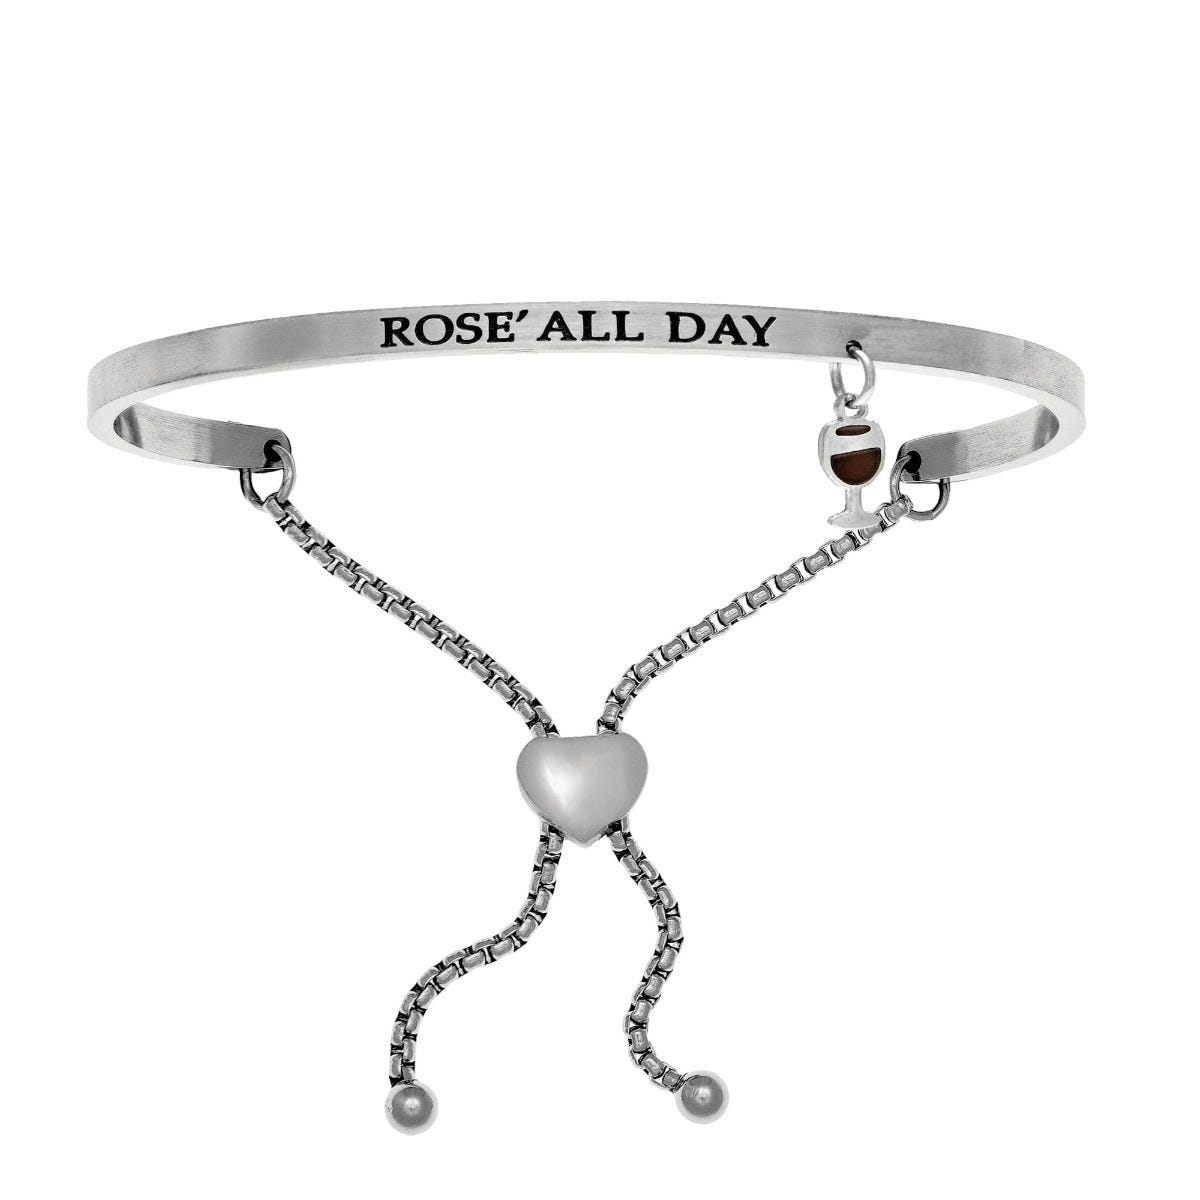 Rose' All Day. Intuitions Bolo Bracelet in White Stainless Steel